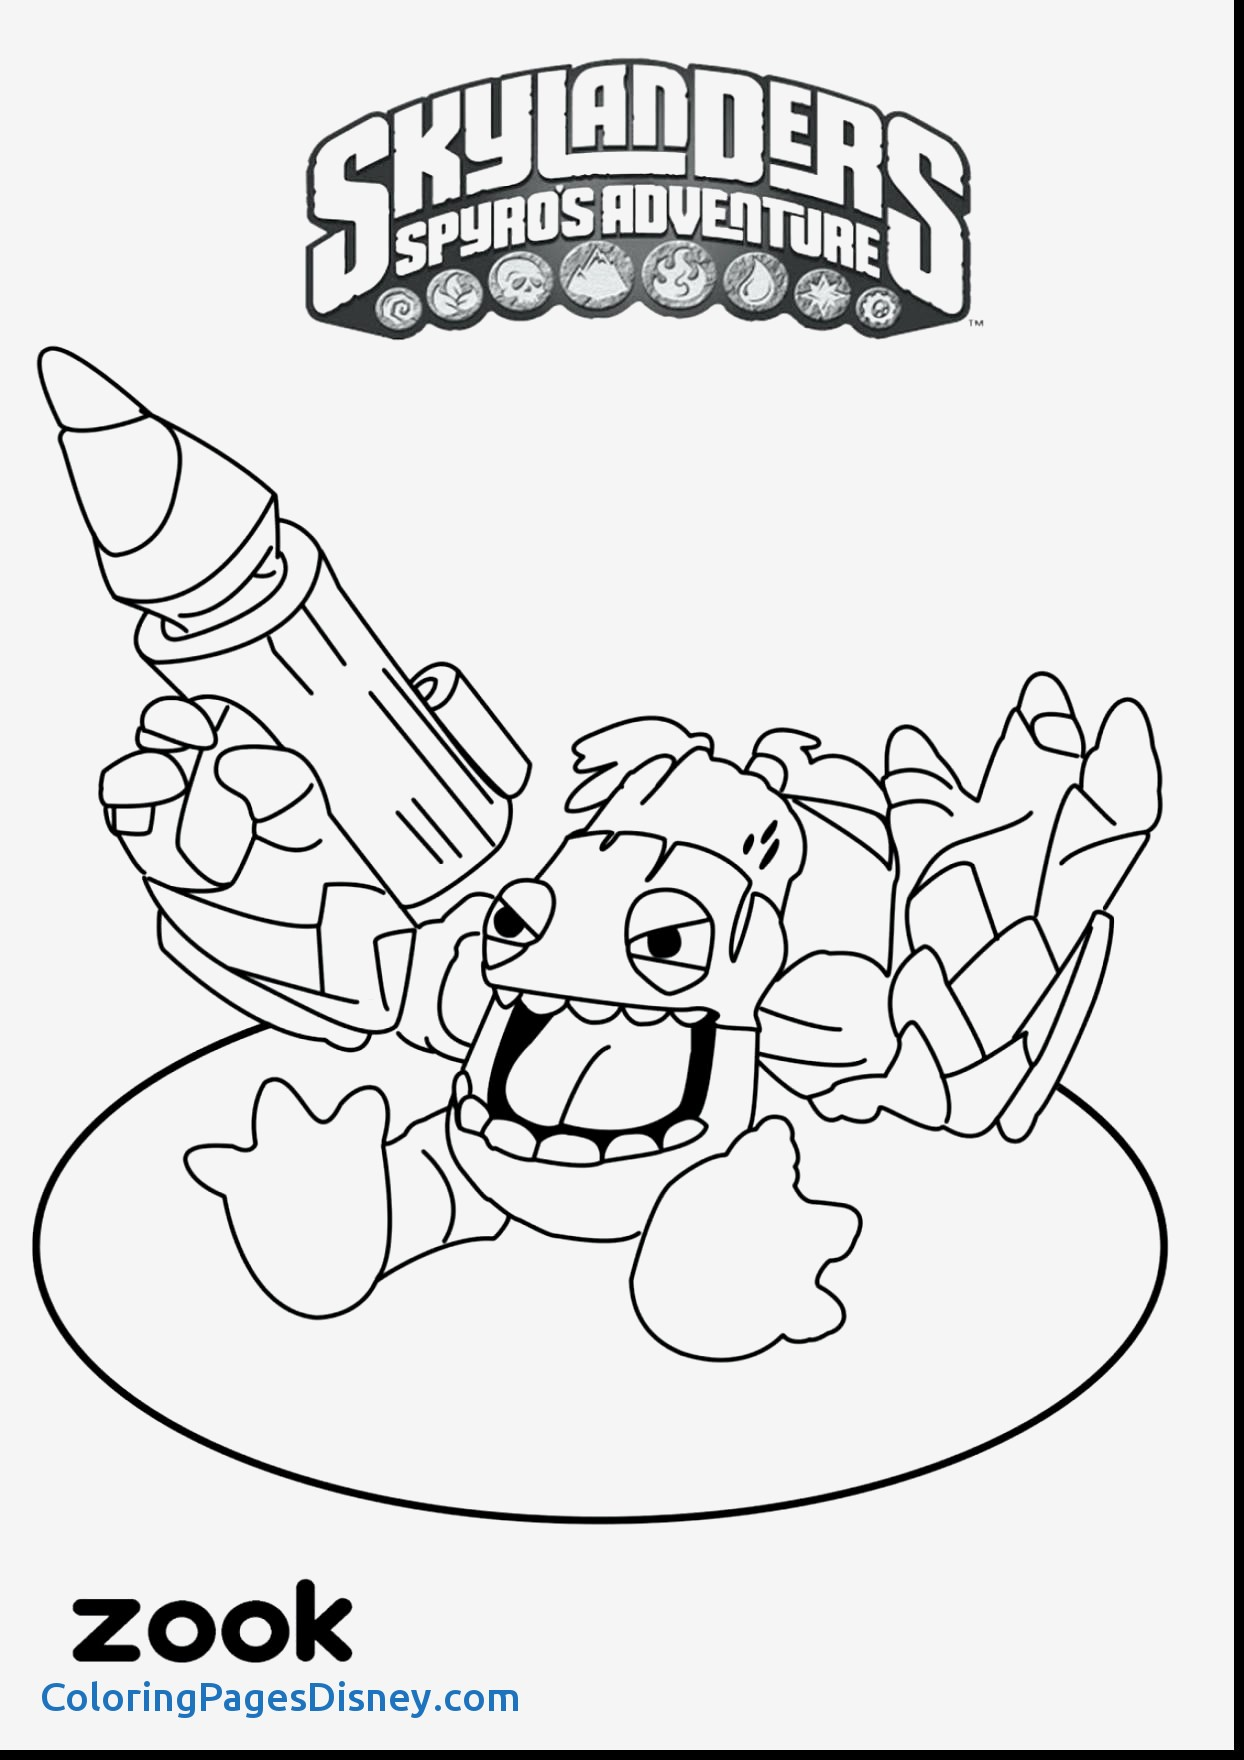 The Best Free Tayo Coloring Page Images Download From 39 Free